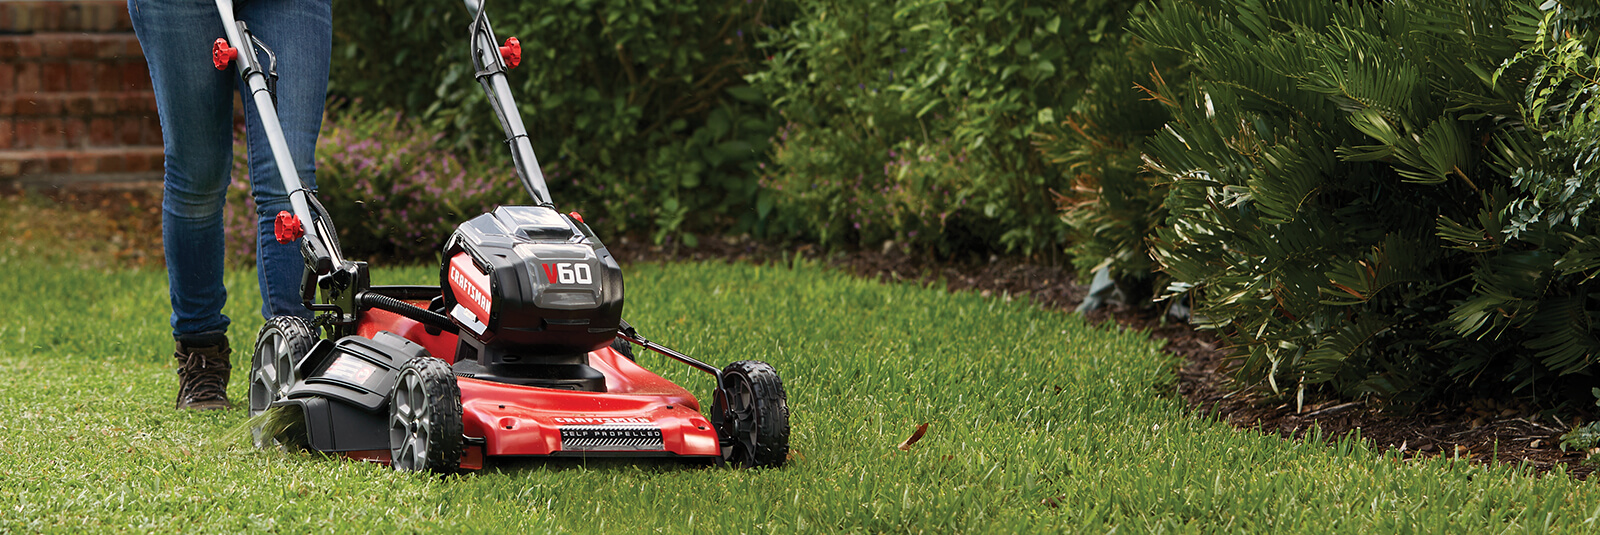 Lawn Mowers | Riding, Push, Self-Propelled Lawn Mowers | CRAFTSMAN®